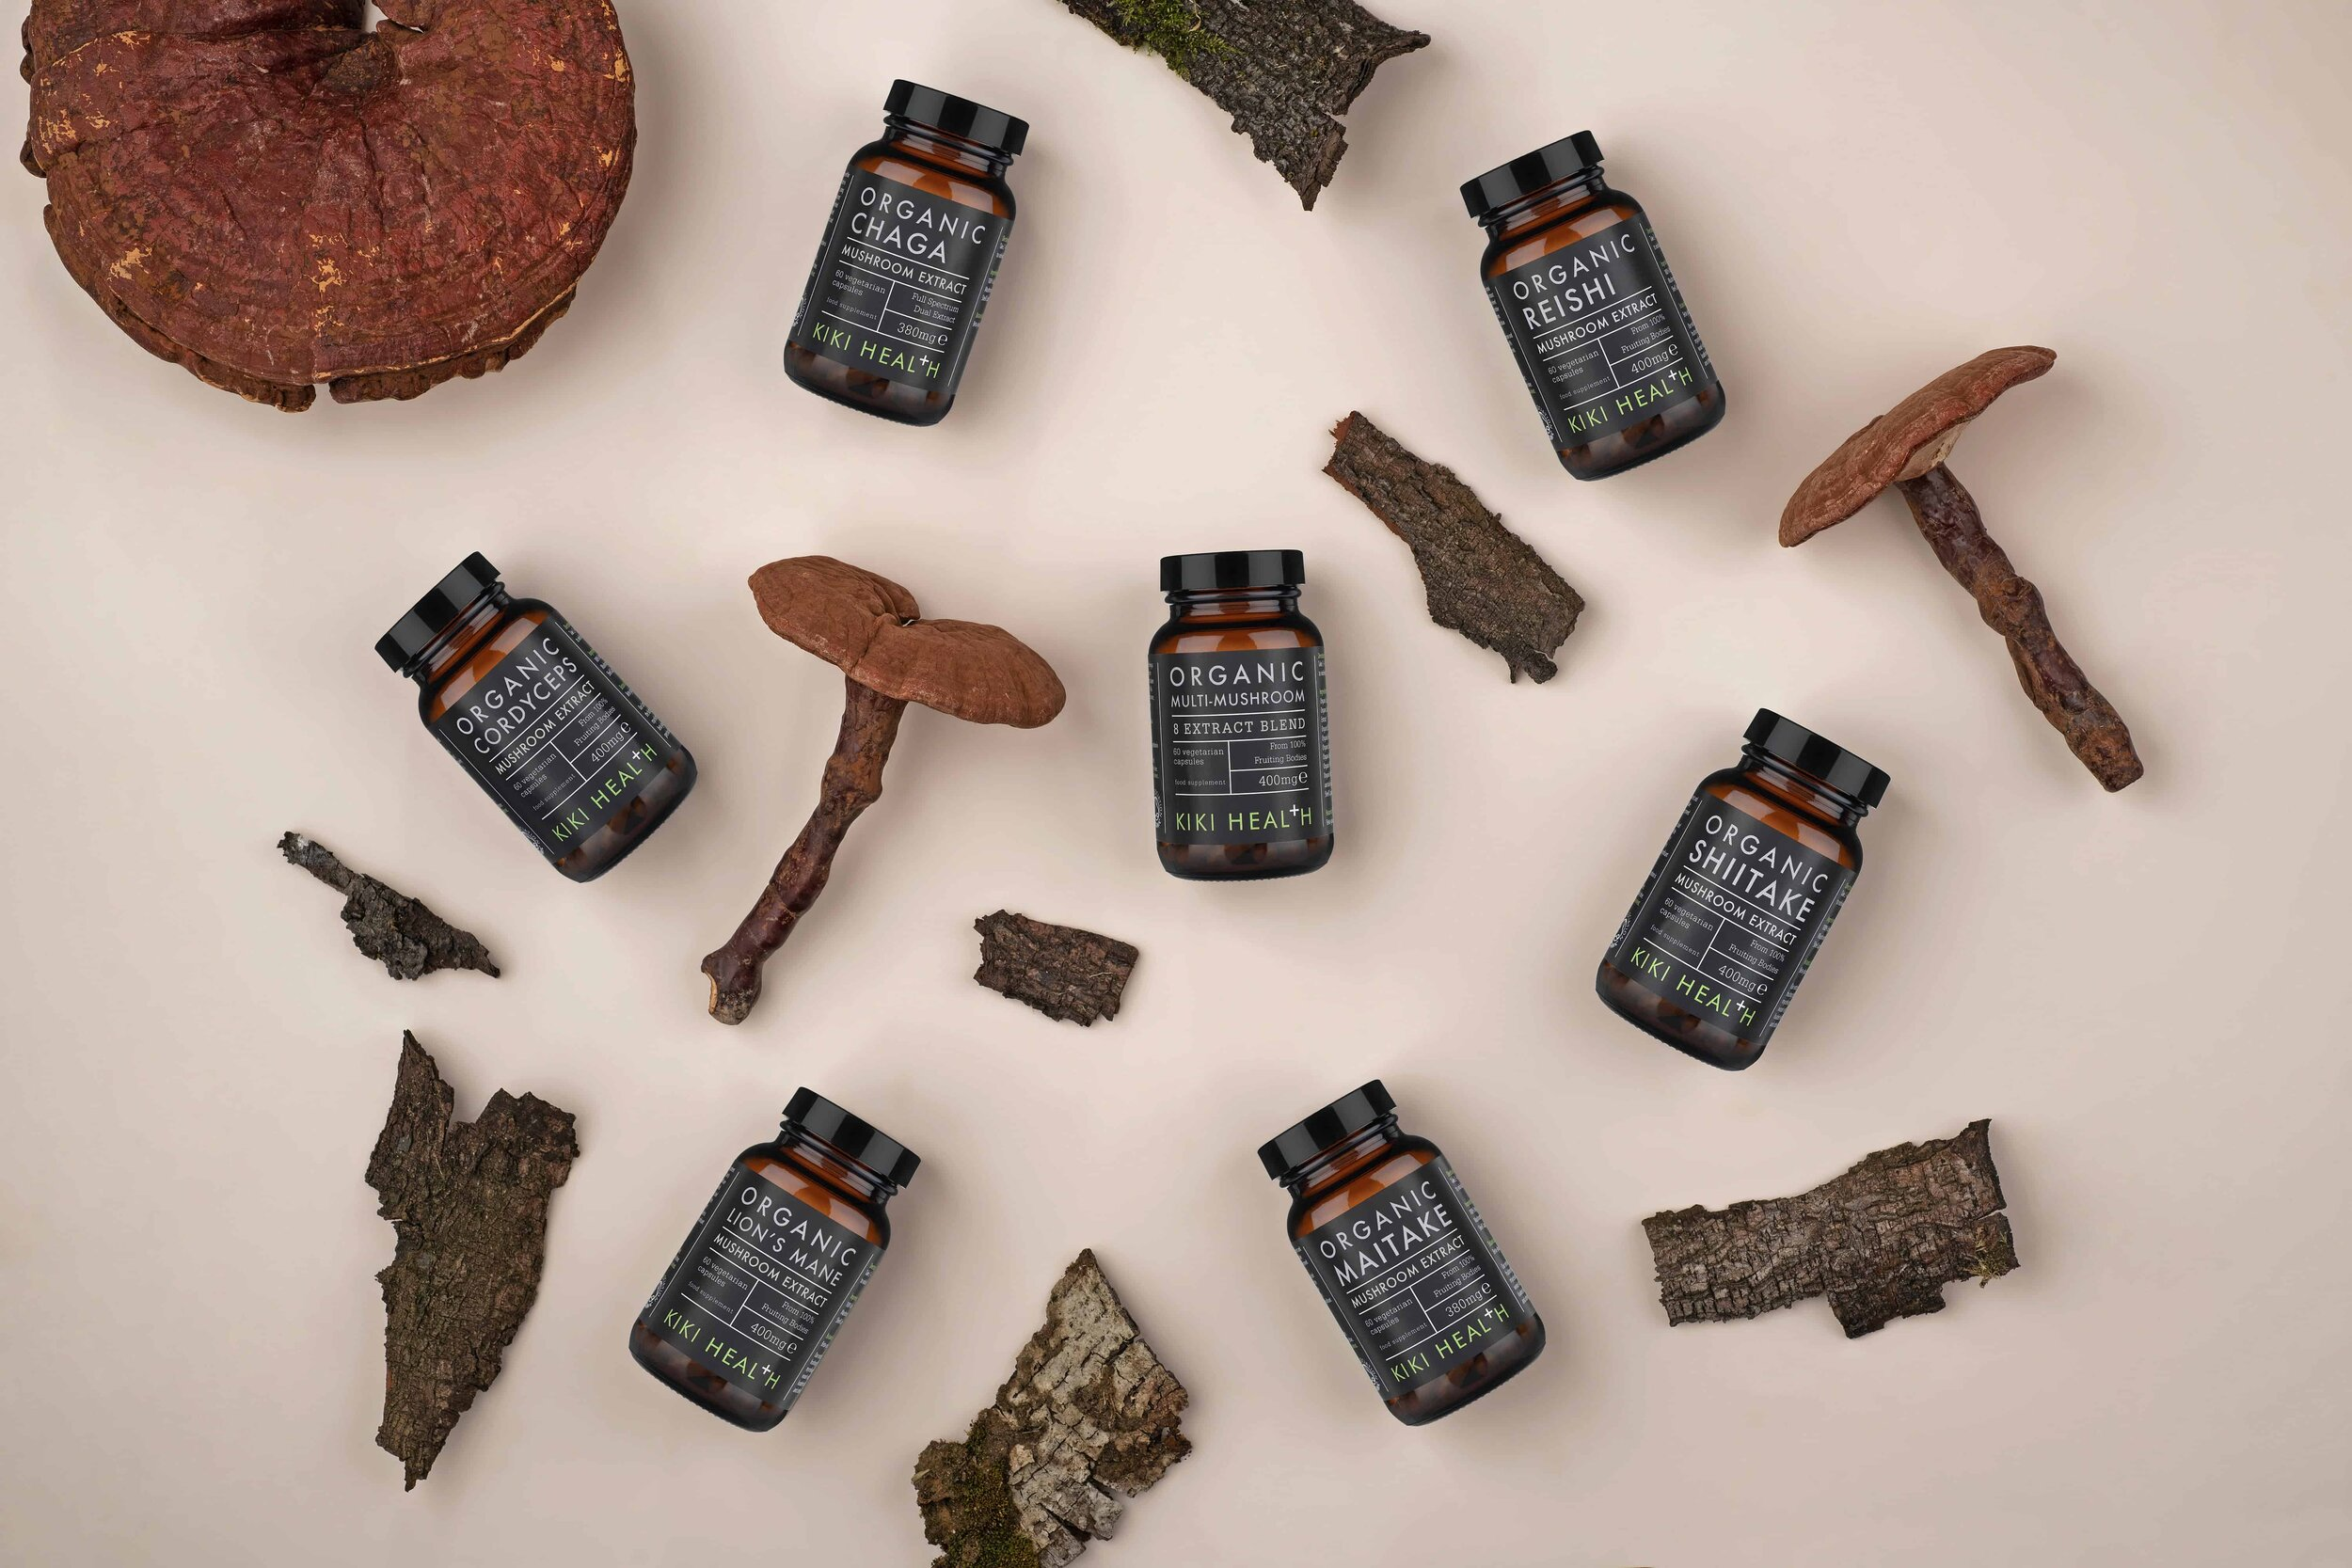 Best Supplements For Weight Loss (The Only Supplements Worth Buying)